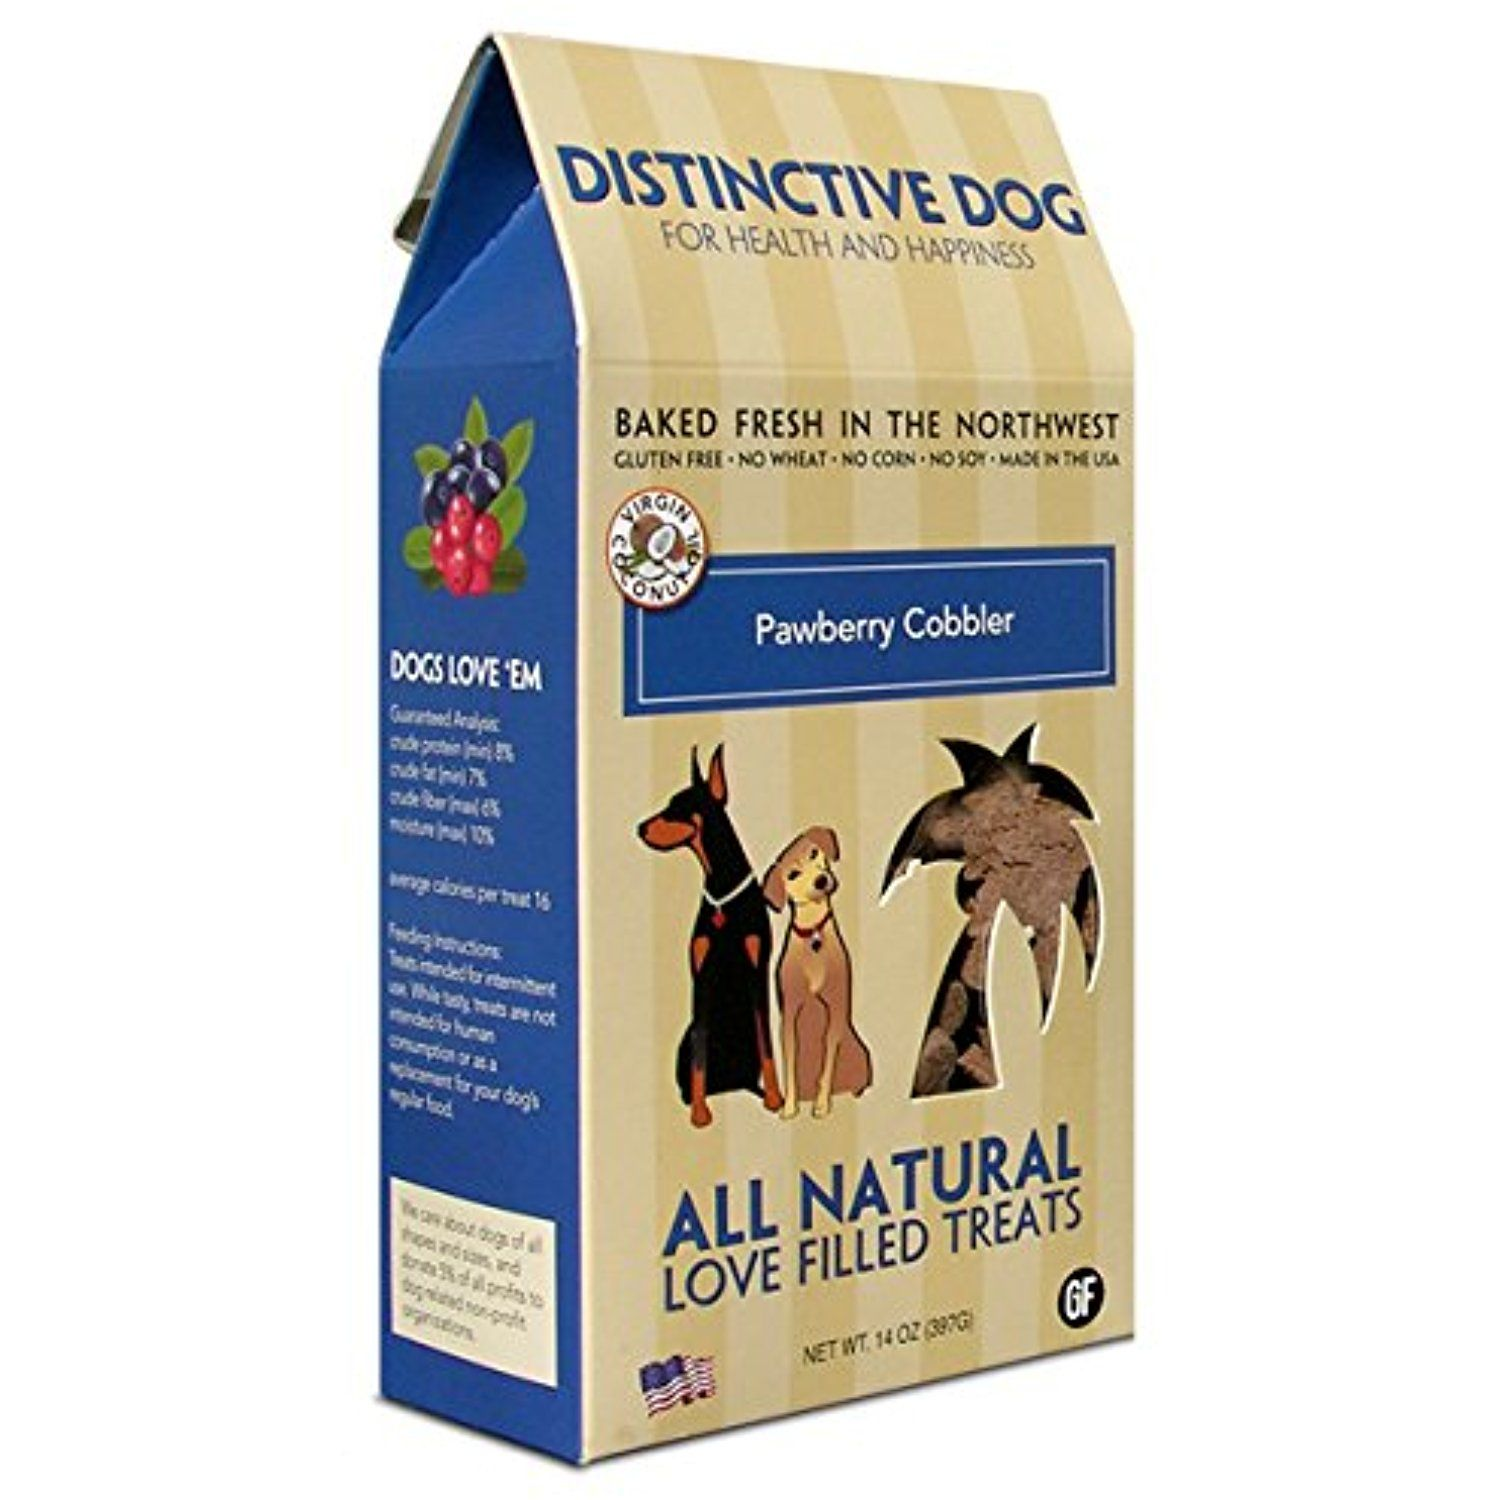 Distinctive Dog Pawberry Cobbler Dog Treats 14 Ounce You Can